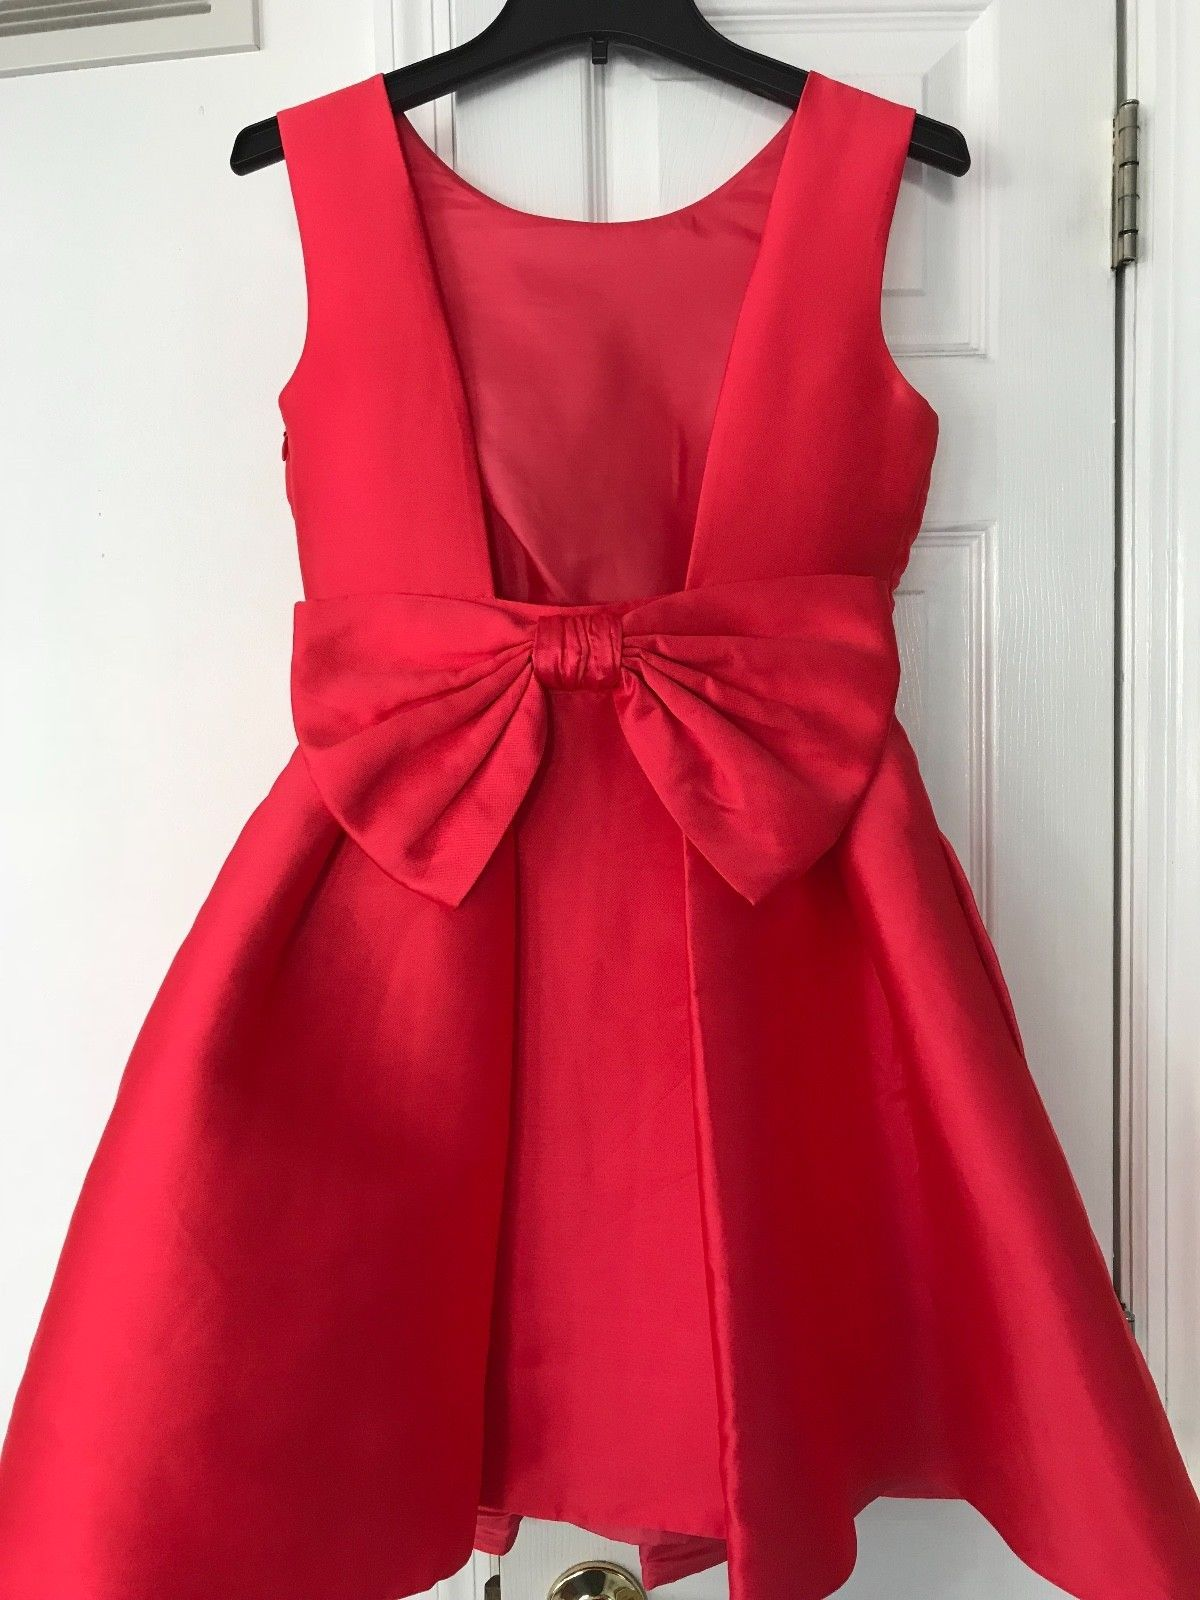 46d03e59f47 Kate Spade Specialty Store Geranium Bow Open Back Silk Mini Dress  428 Size  4